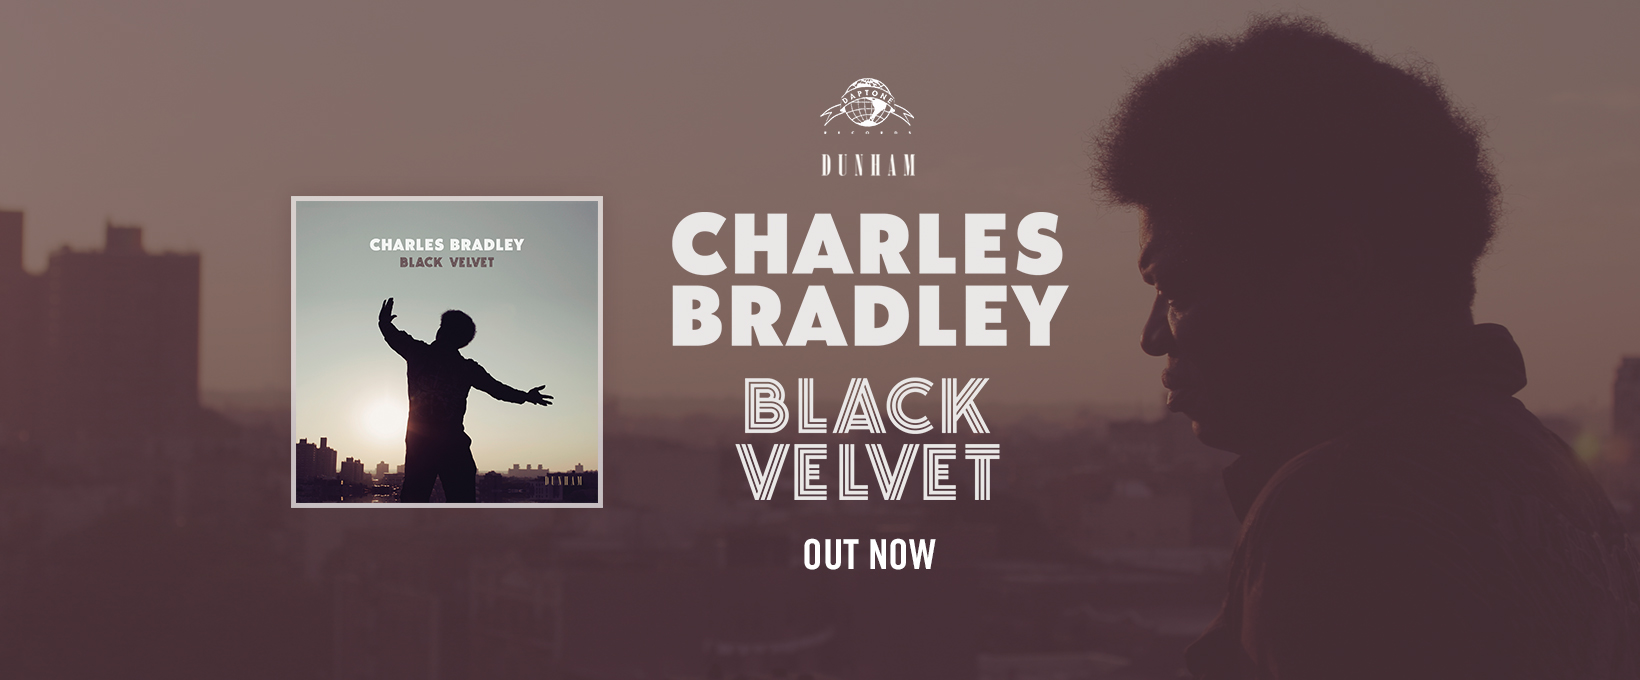 Charles Bradley Gives A Proper & Soulful Farewell With Final Studio LP 'Black Velvet' (ALBUM REVIEW)